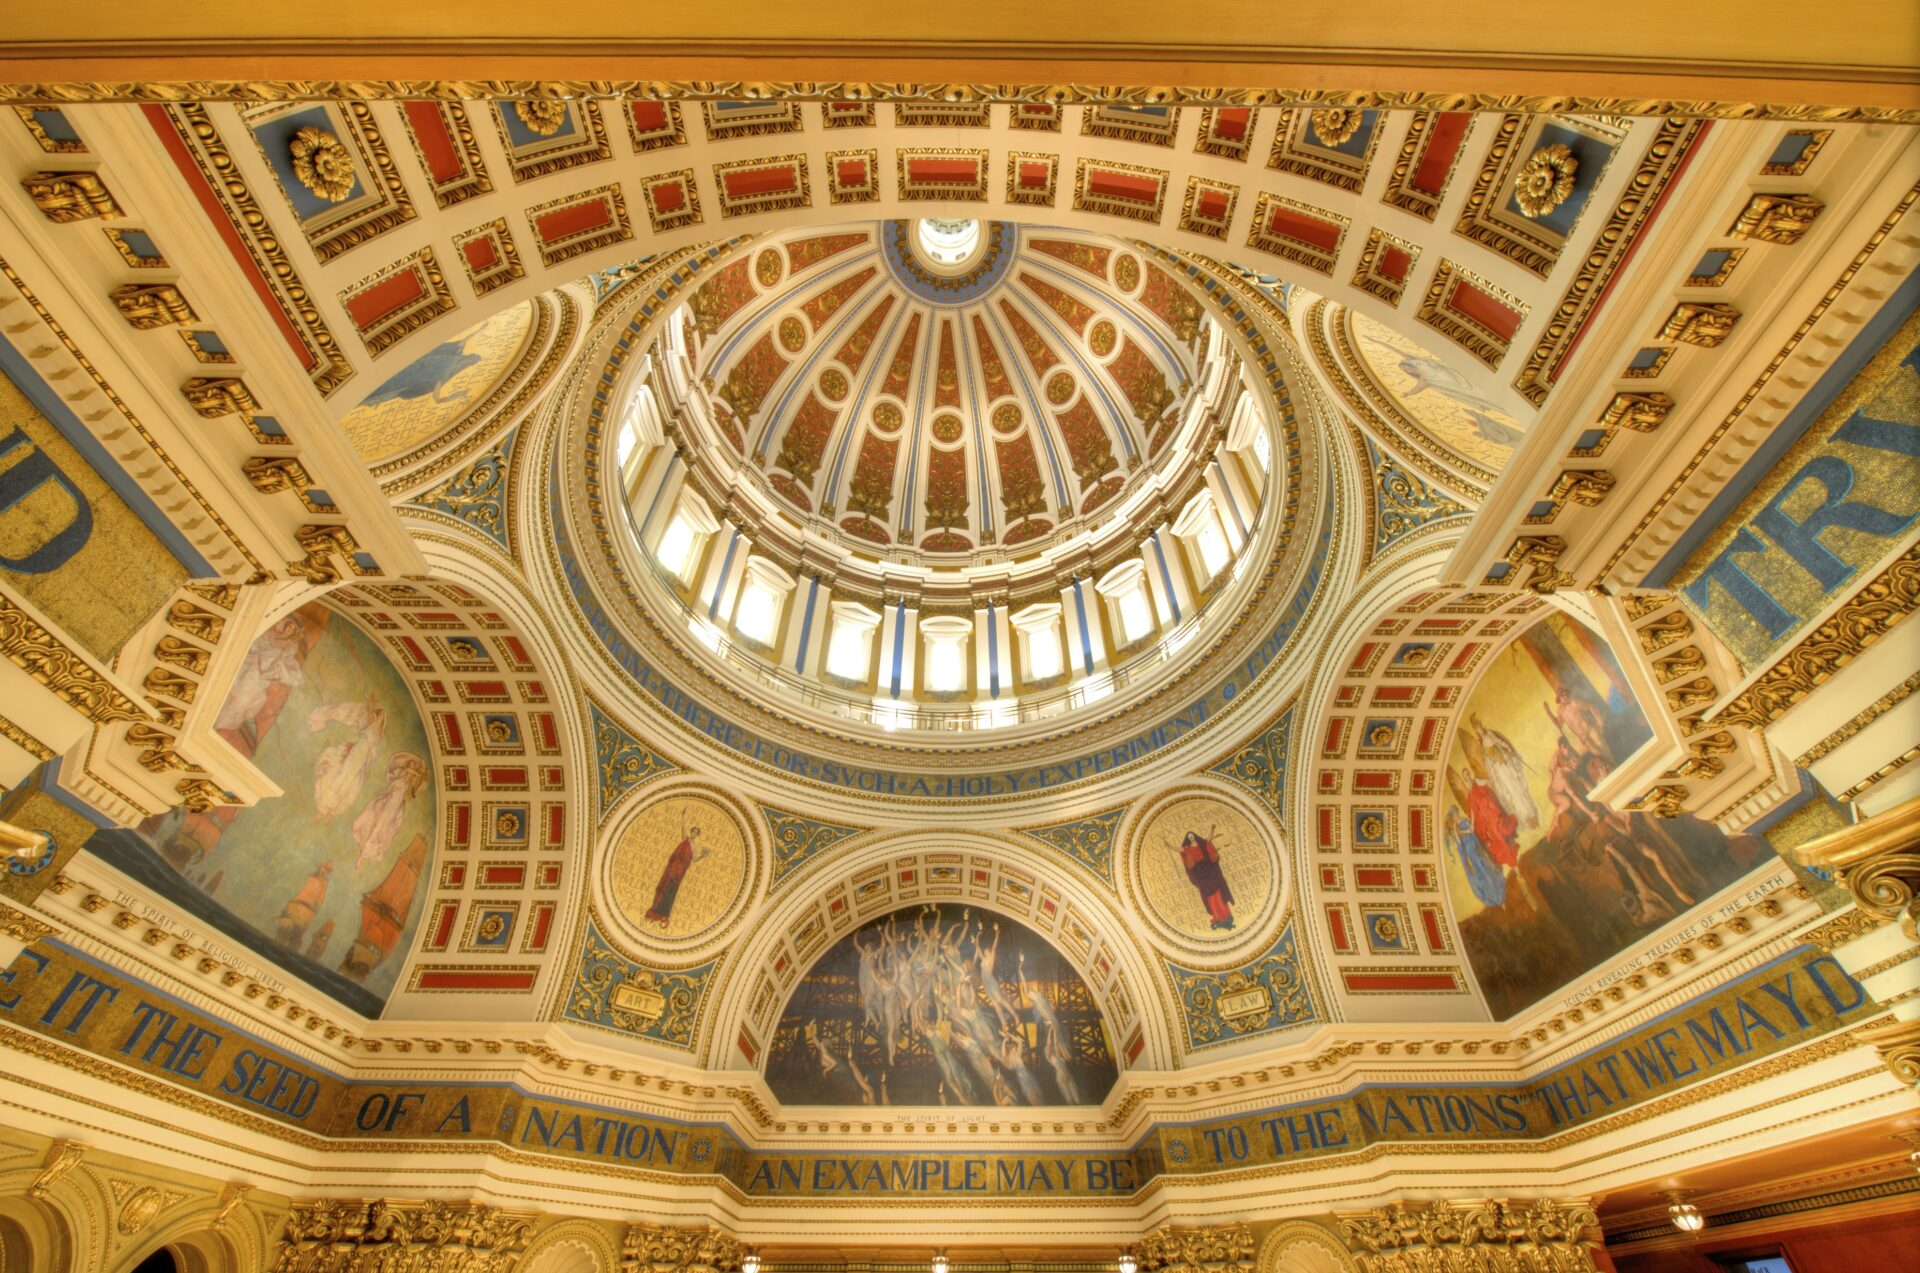 The Pennsylvania State Capitol Rotunda. (Source: Wikimedia)